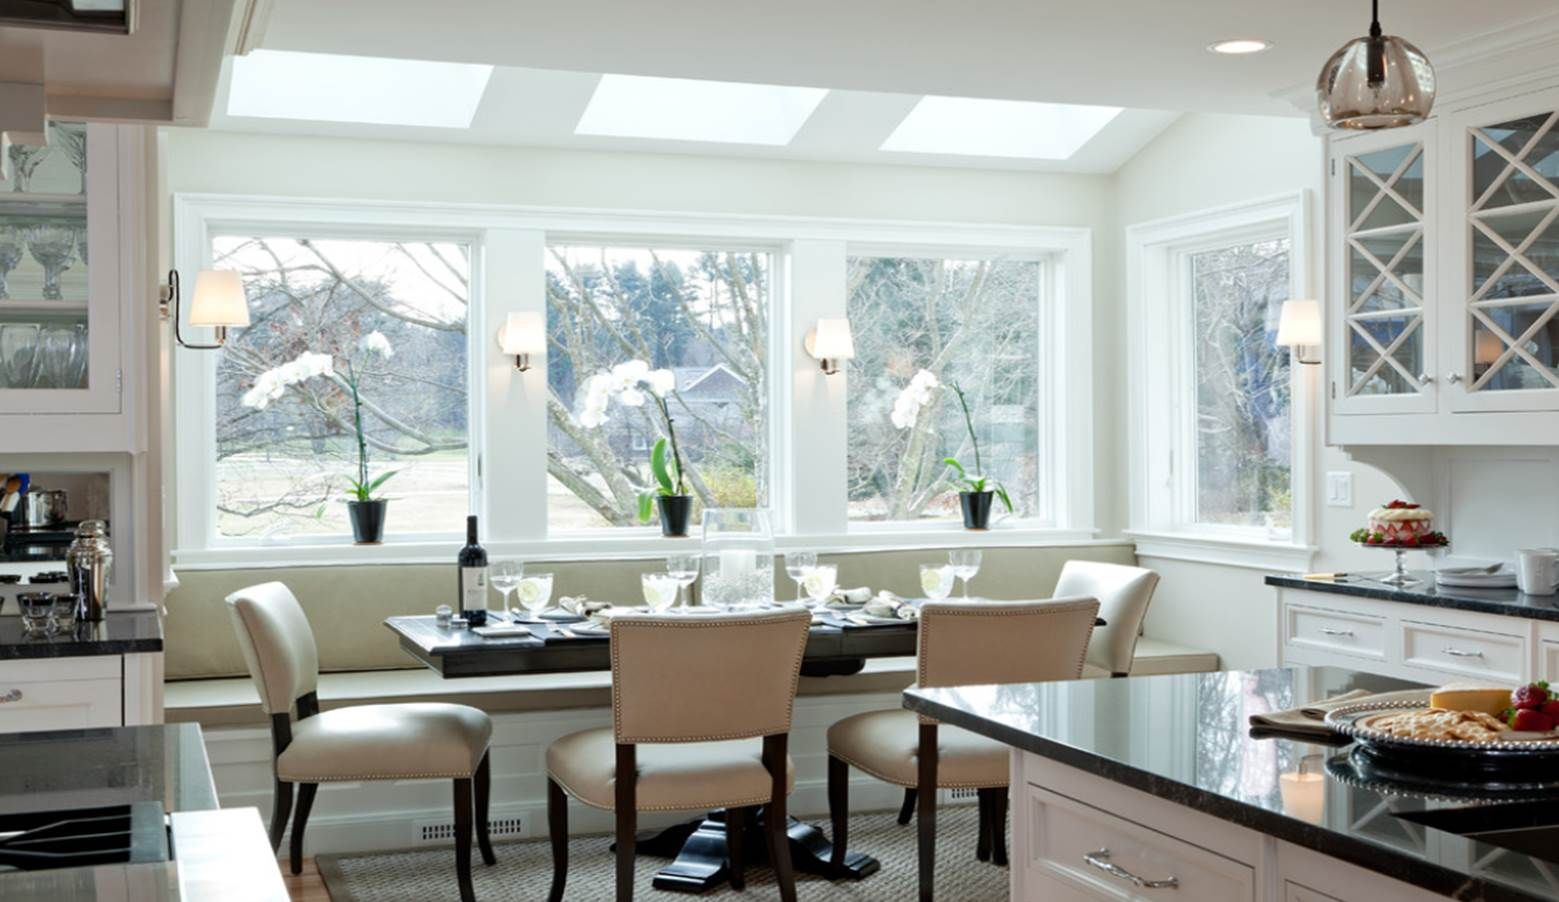 Exquisite Dining Room Design Idea With Windows and Adorable Bay ...